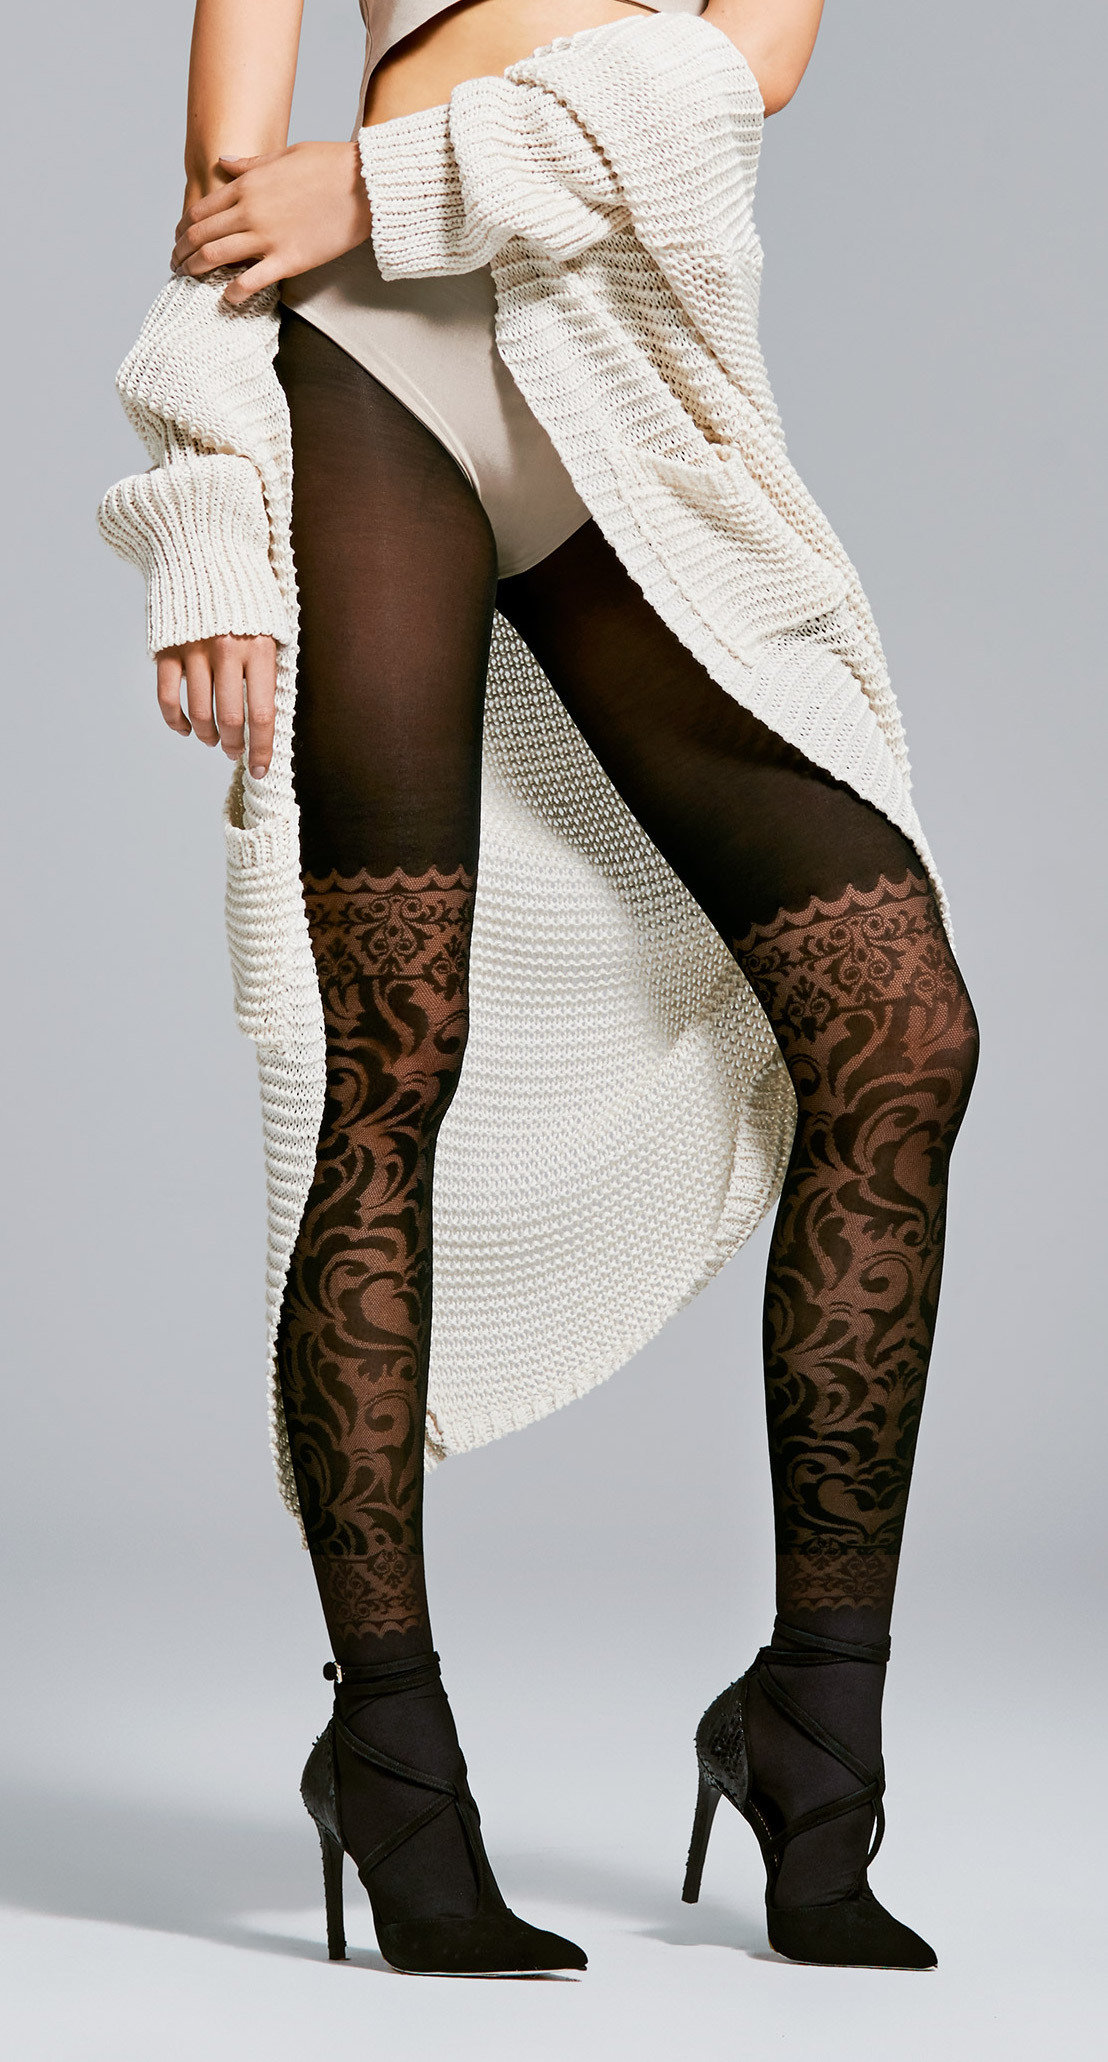 Fiore: Sexy Secret Desire Patterned Semi-Opaque Tights SOLD OUT